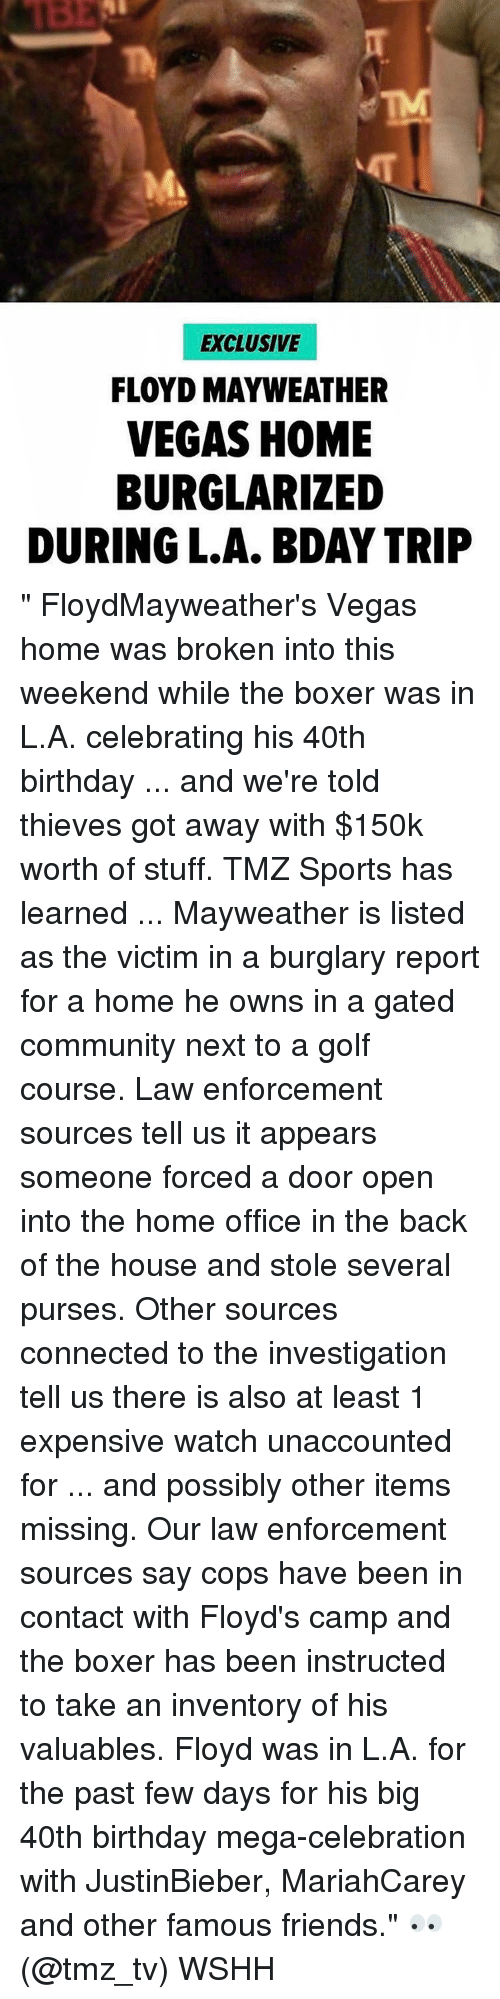 """40th Birthday: EXCLUSIVE  FLOYD MAYWEATHER  VEGAS HOME  BURGLARIZED  DURING L.A. BDAY TRIP """" FloydMayweather's Vegas home was broken into this weekend while the boxer was in L.A. celebrating his 40th birthday ... and we're told thieves got away with $150k worth of stuff. TMZ Sports has learned ... Mayweather is listed as the victim in a burglary report for a home he owns in a gated community next to a golf course. Law enforcement sources tell us it appears someone forced a door open into the home office in the back of the house and stole several purses. Other sources connected to the investigation tell us there is also at least 1 expensive watch unaccounted for ... and possibly other items missing. Our law enforcement sources say cops have been in contact with Floyd's camp and the boxer has been instructed to take an inventory of his valuables. Floyd was in L.A. for the past few days for his big 40th birthday mega-celebration with JustinBieber, MariahCarey and other famous friends."""" 👀 (@tmz_tv) WSHH"""